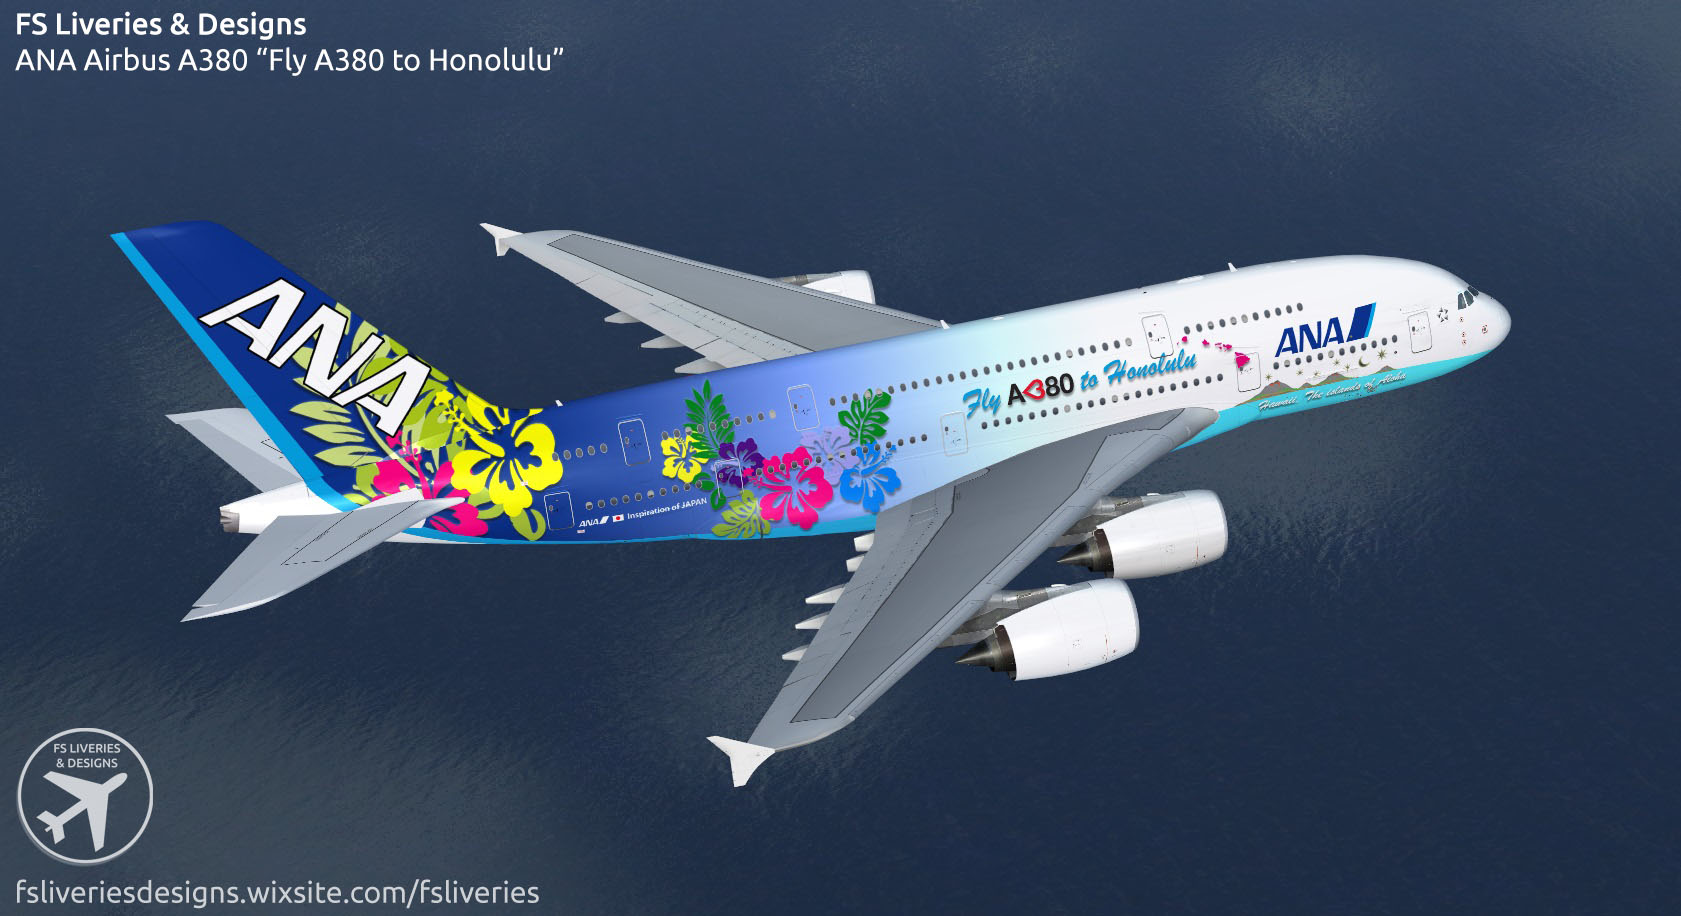 "ANA Airbus A380 ""Fly A380 to Honolulu"""